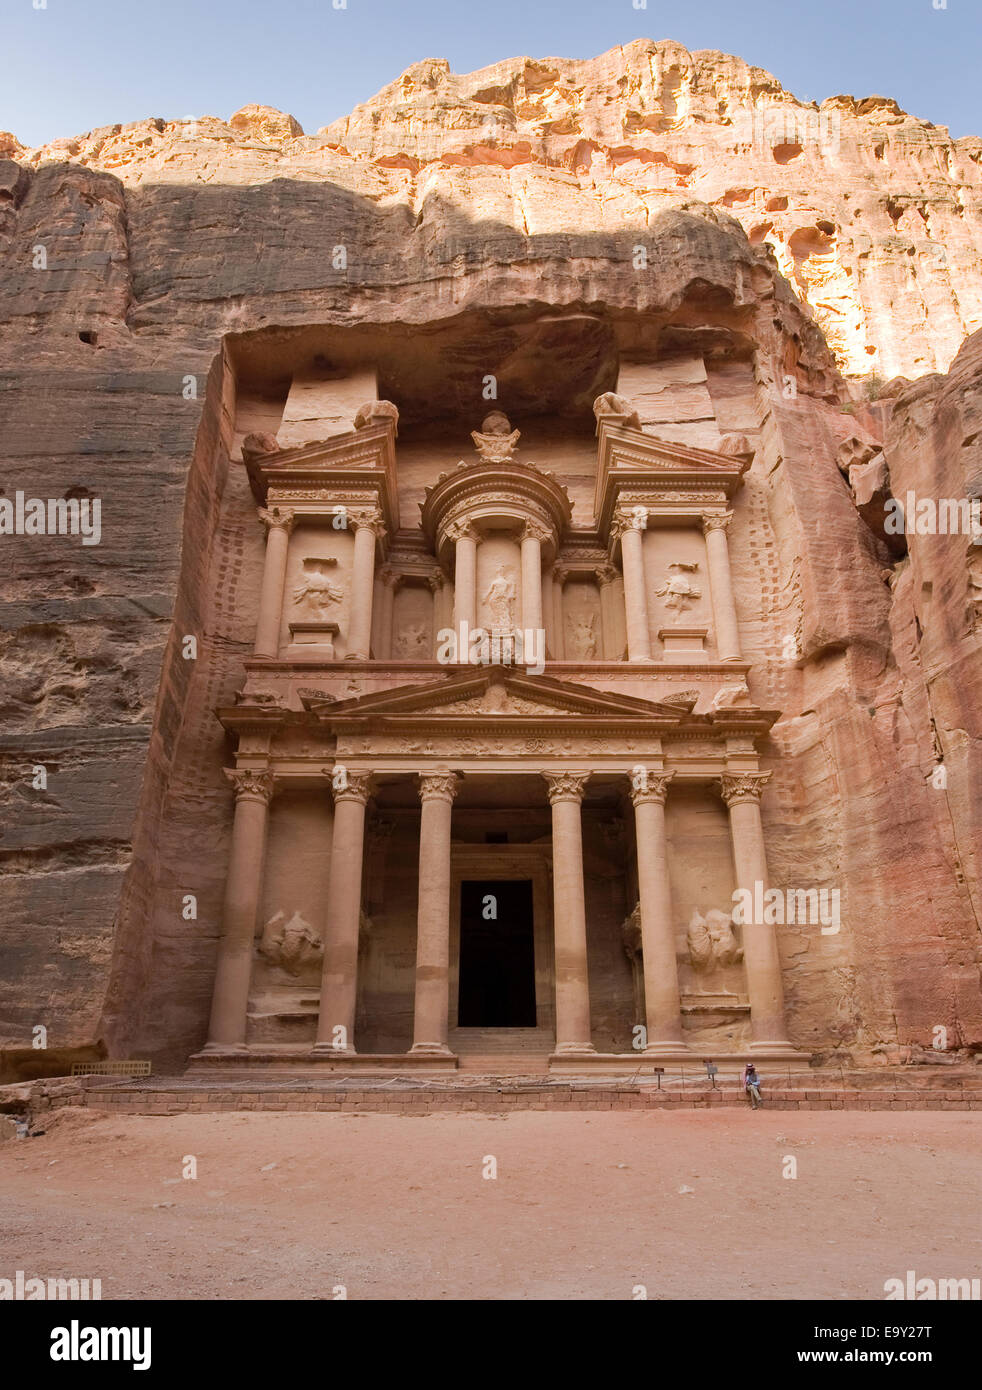 The treasury is also called Al Khazna, it is the most magnificent and famous facade in Petra Jordan, Stock Photo